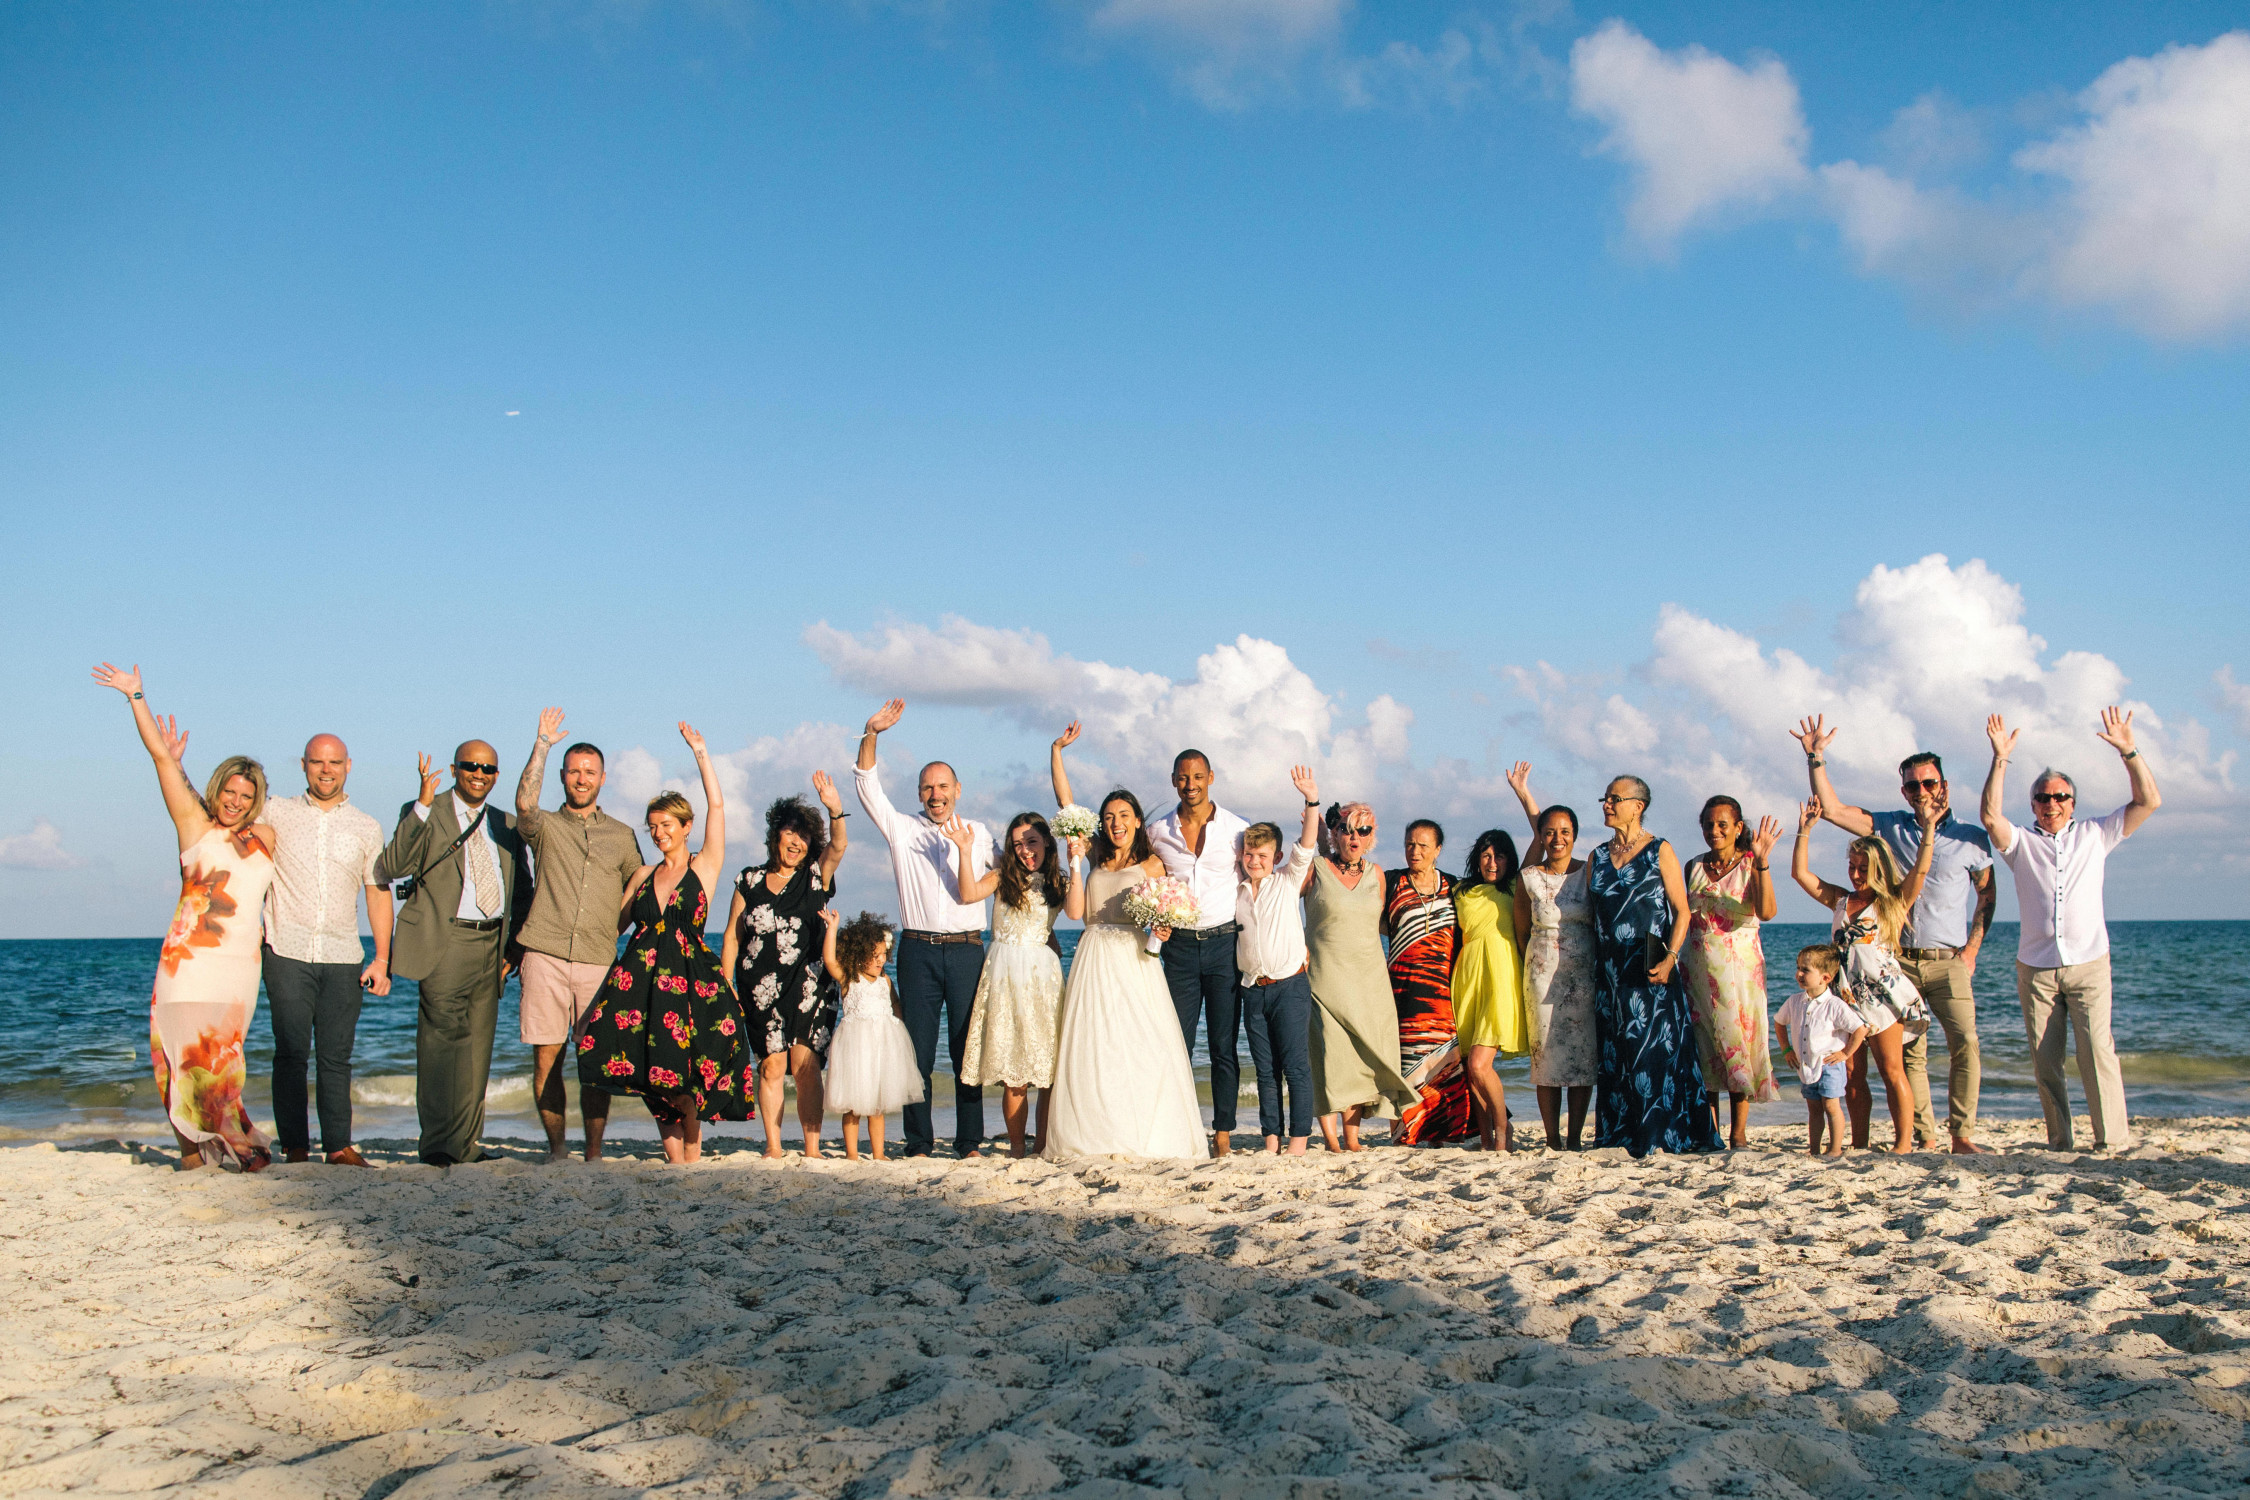 cancun-riviera-royalton-wedding-photography-kelly-clarke-photography-697